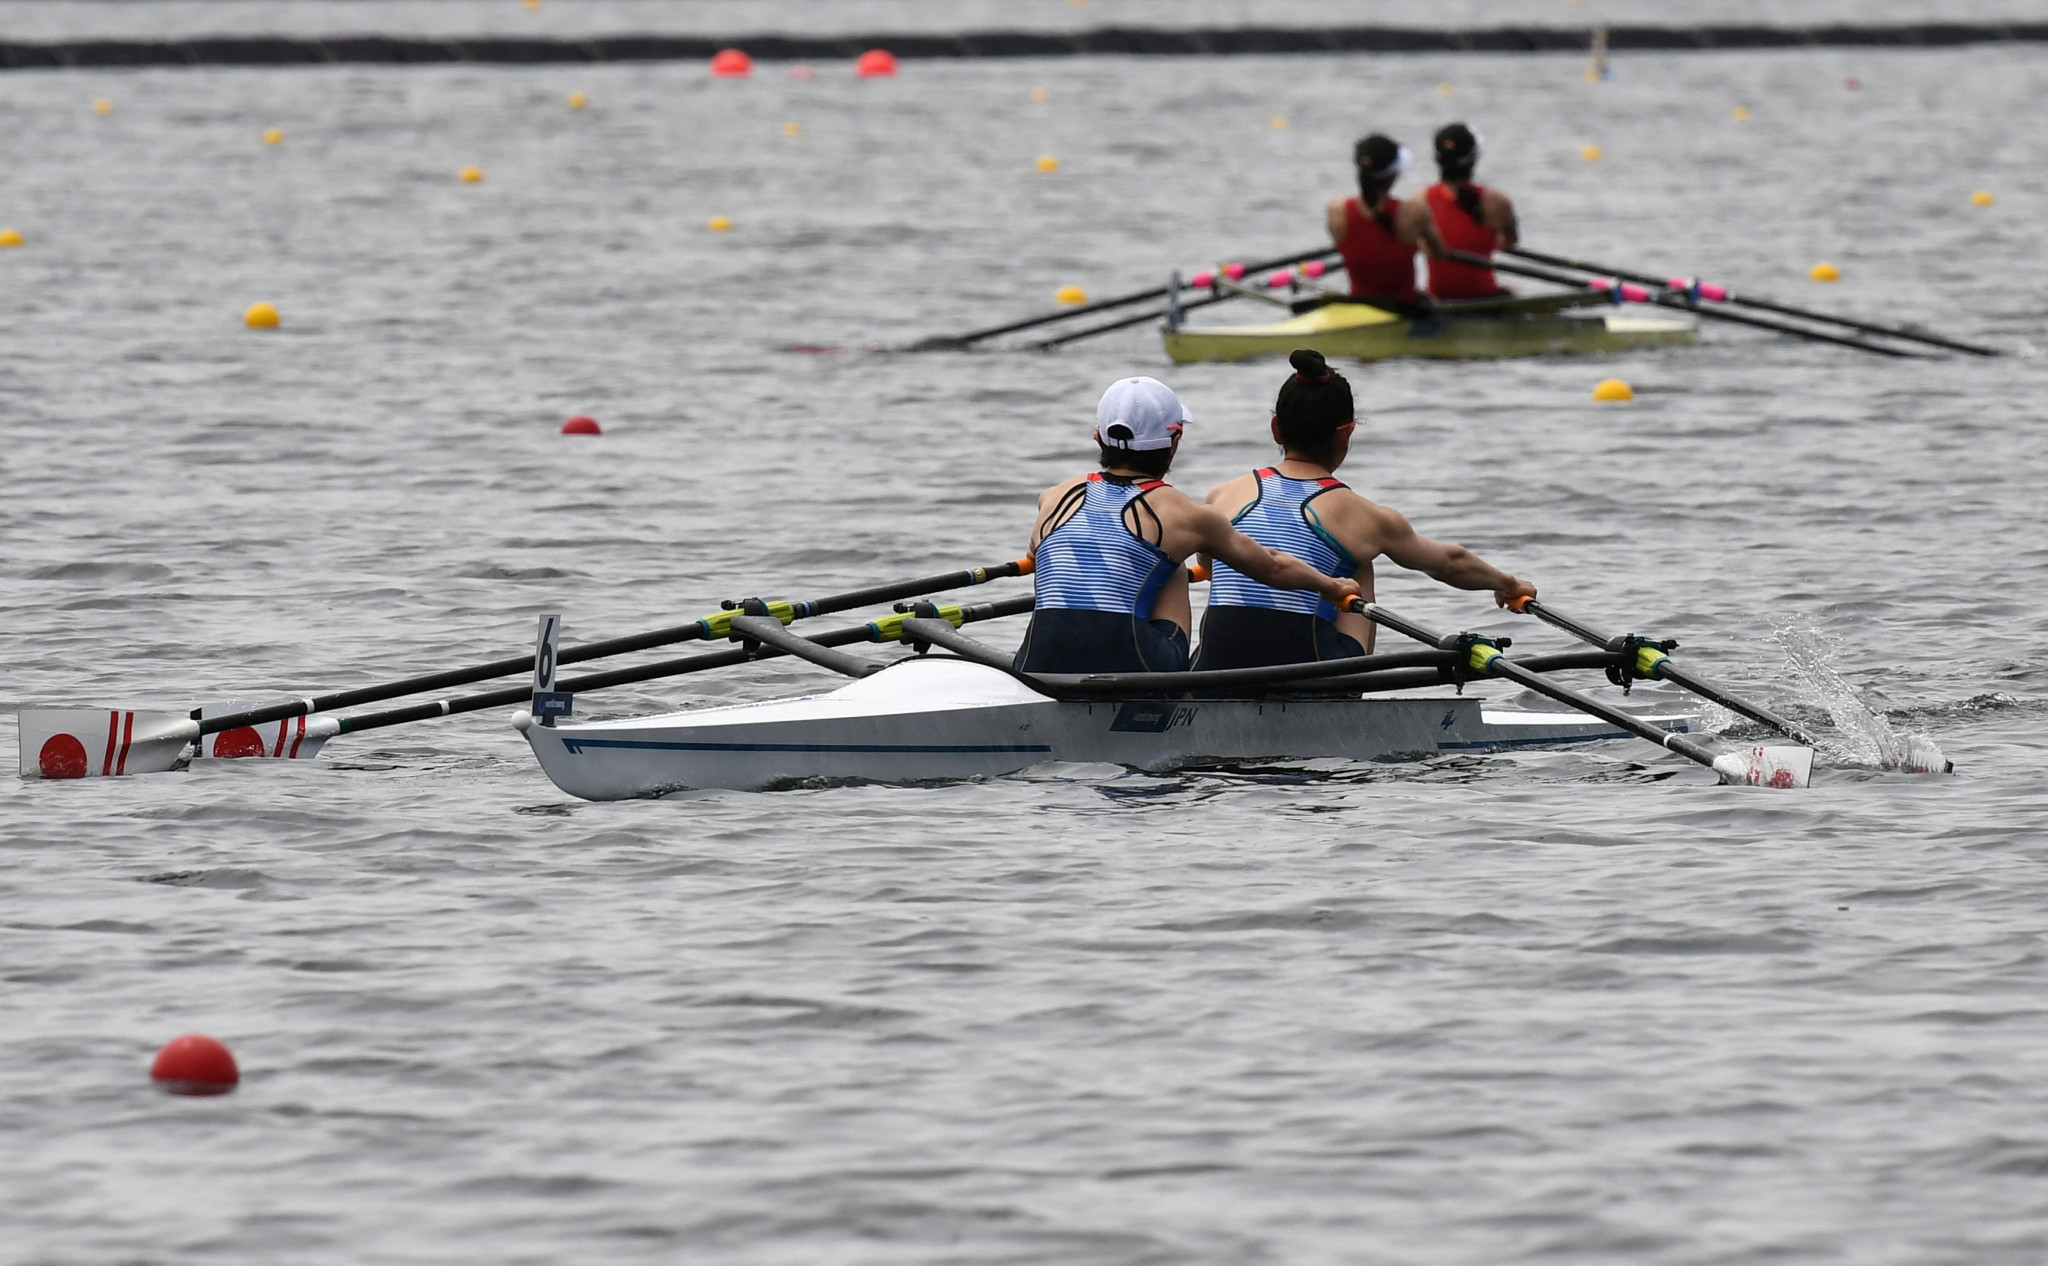 Asia and Oceania Olympic and Paralympic rowing qualifier underway in Tokyo